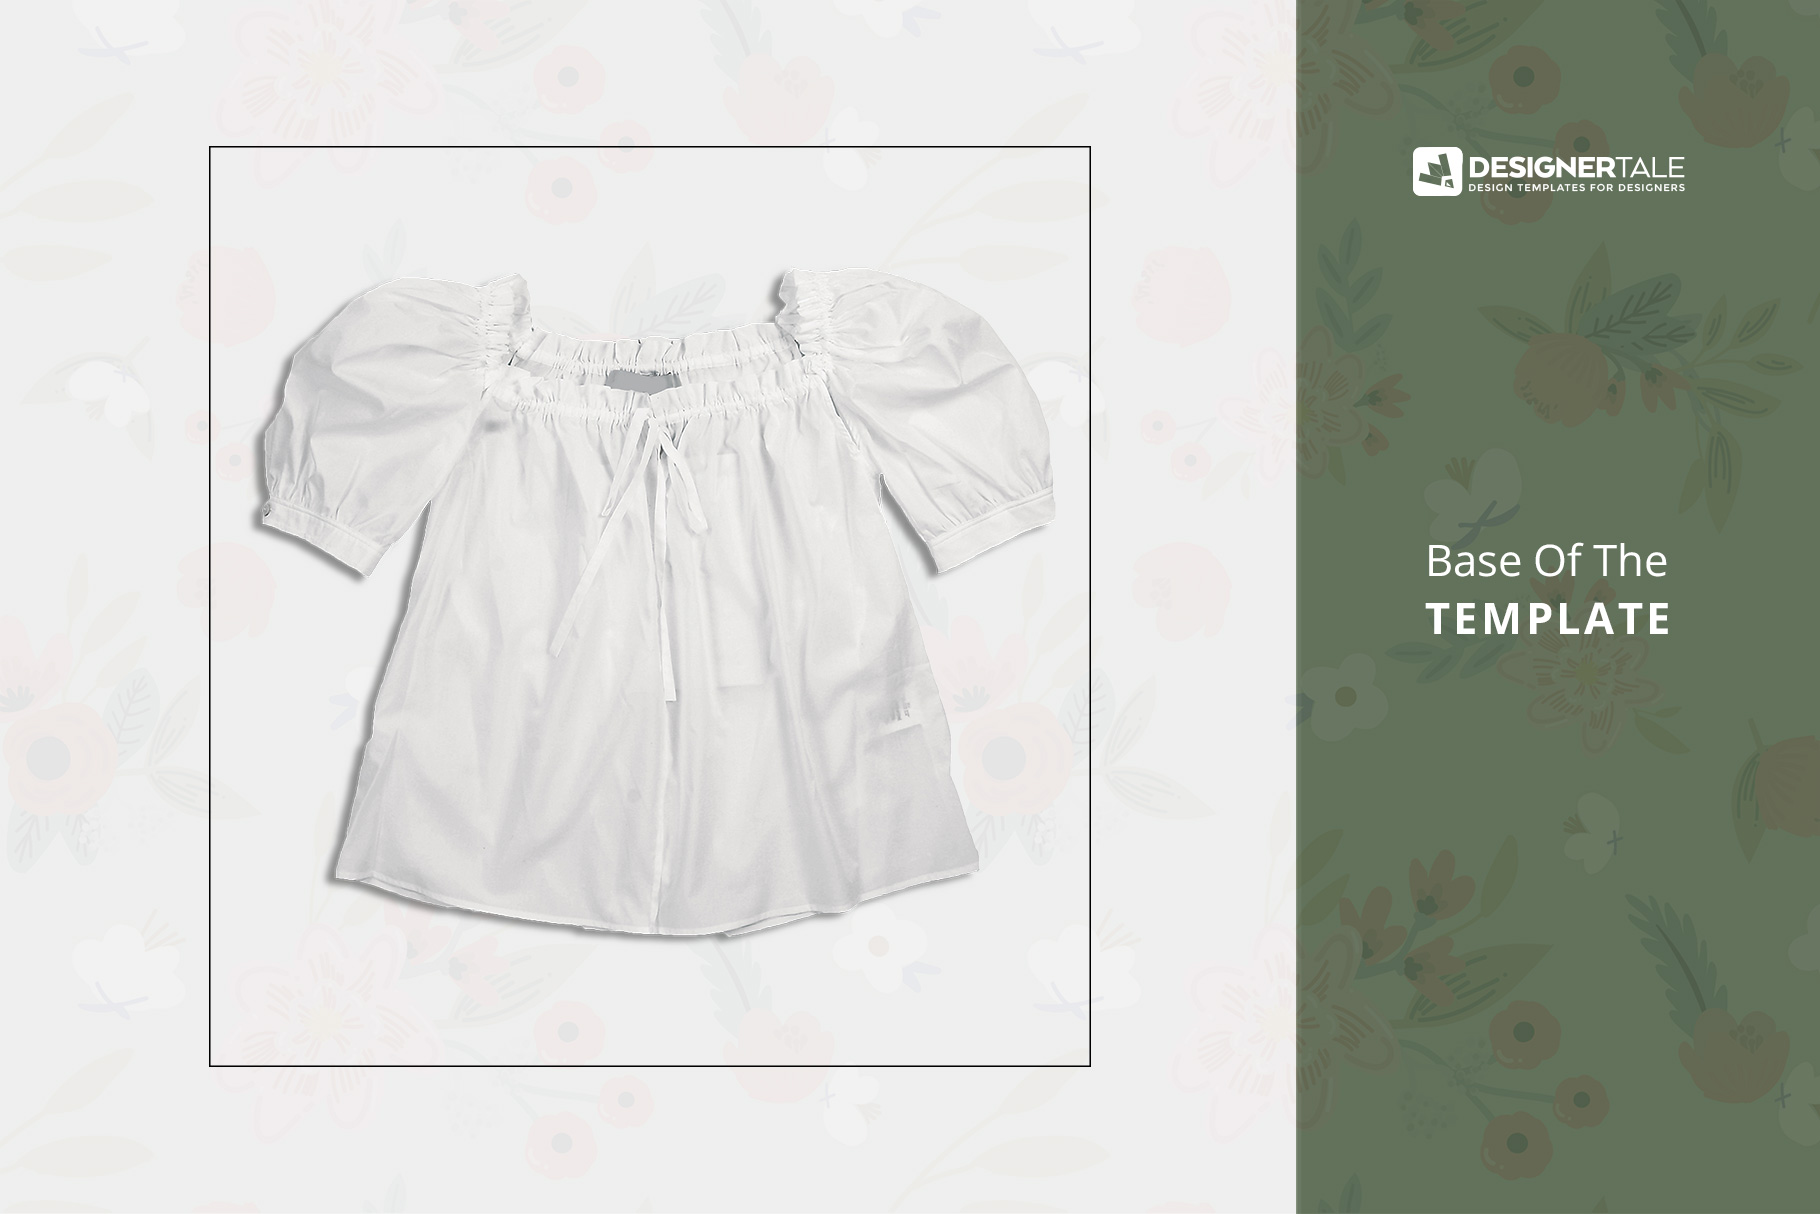 raw image used to create this female puff shoulder blouse mockup